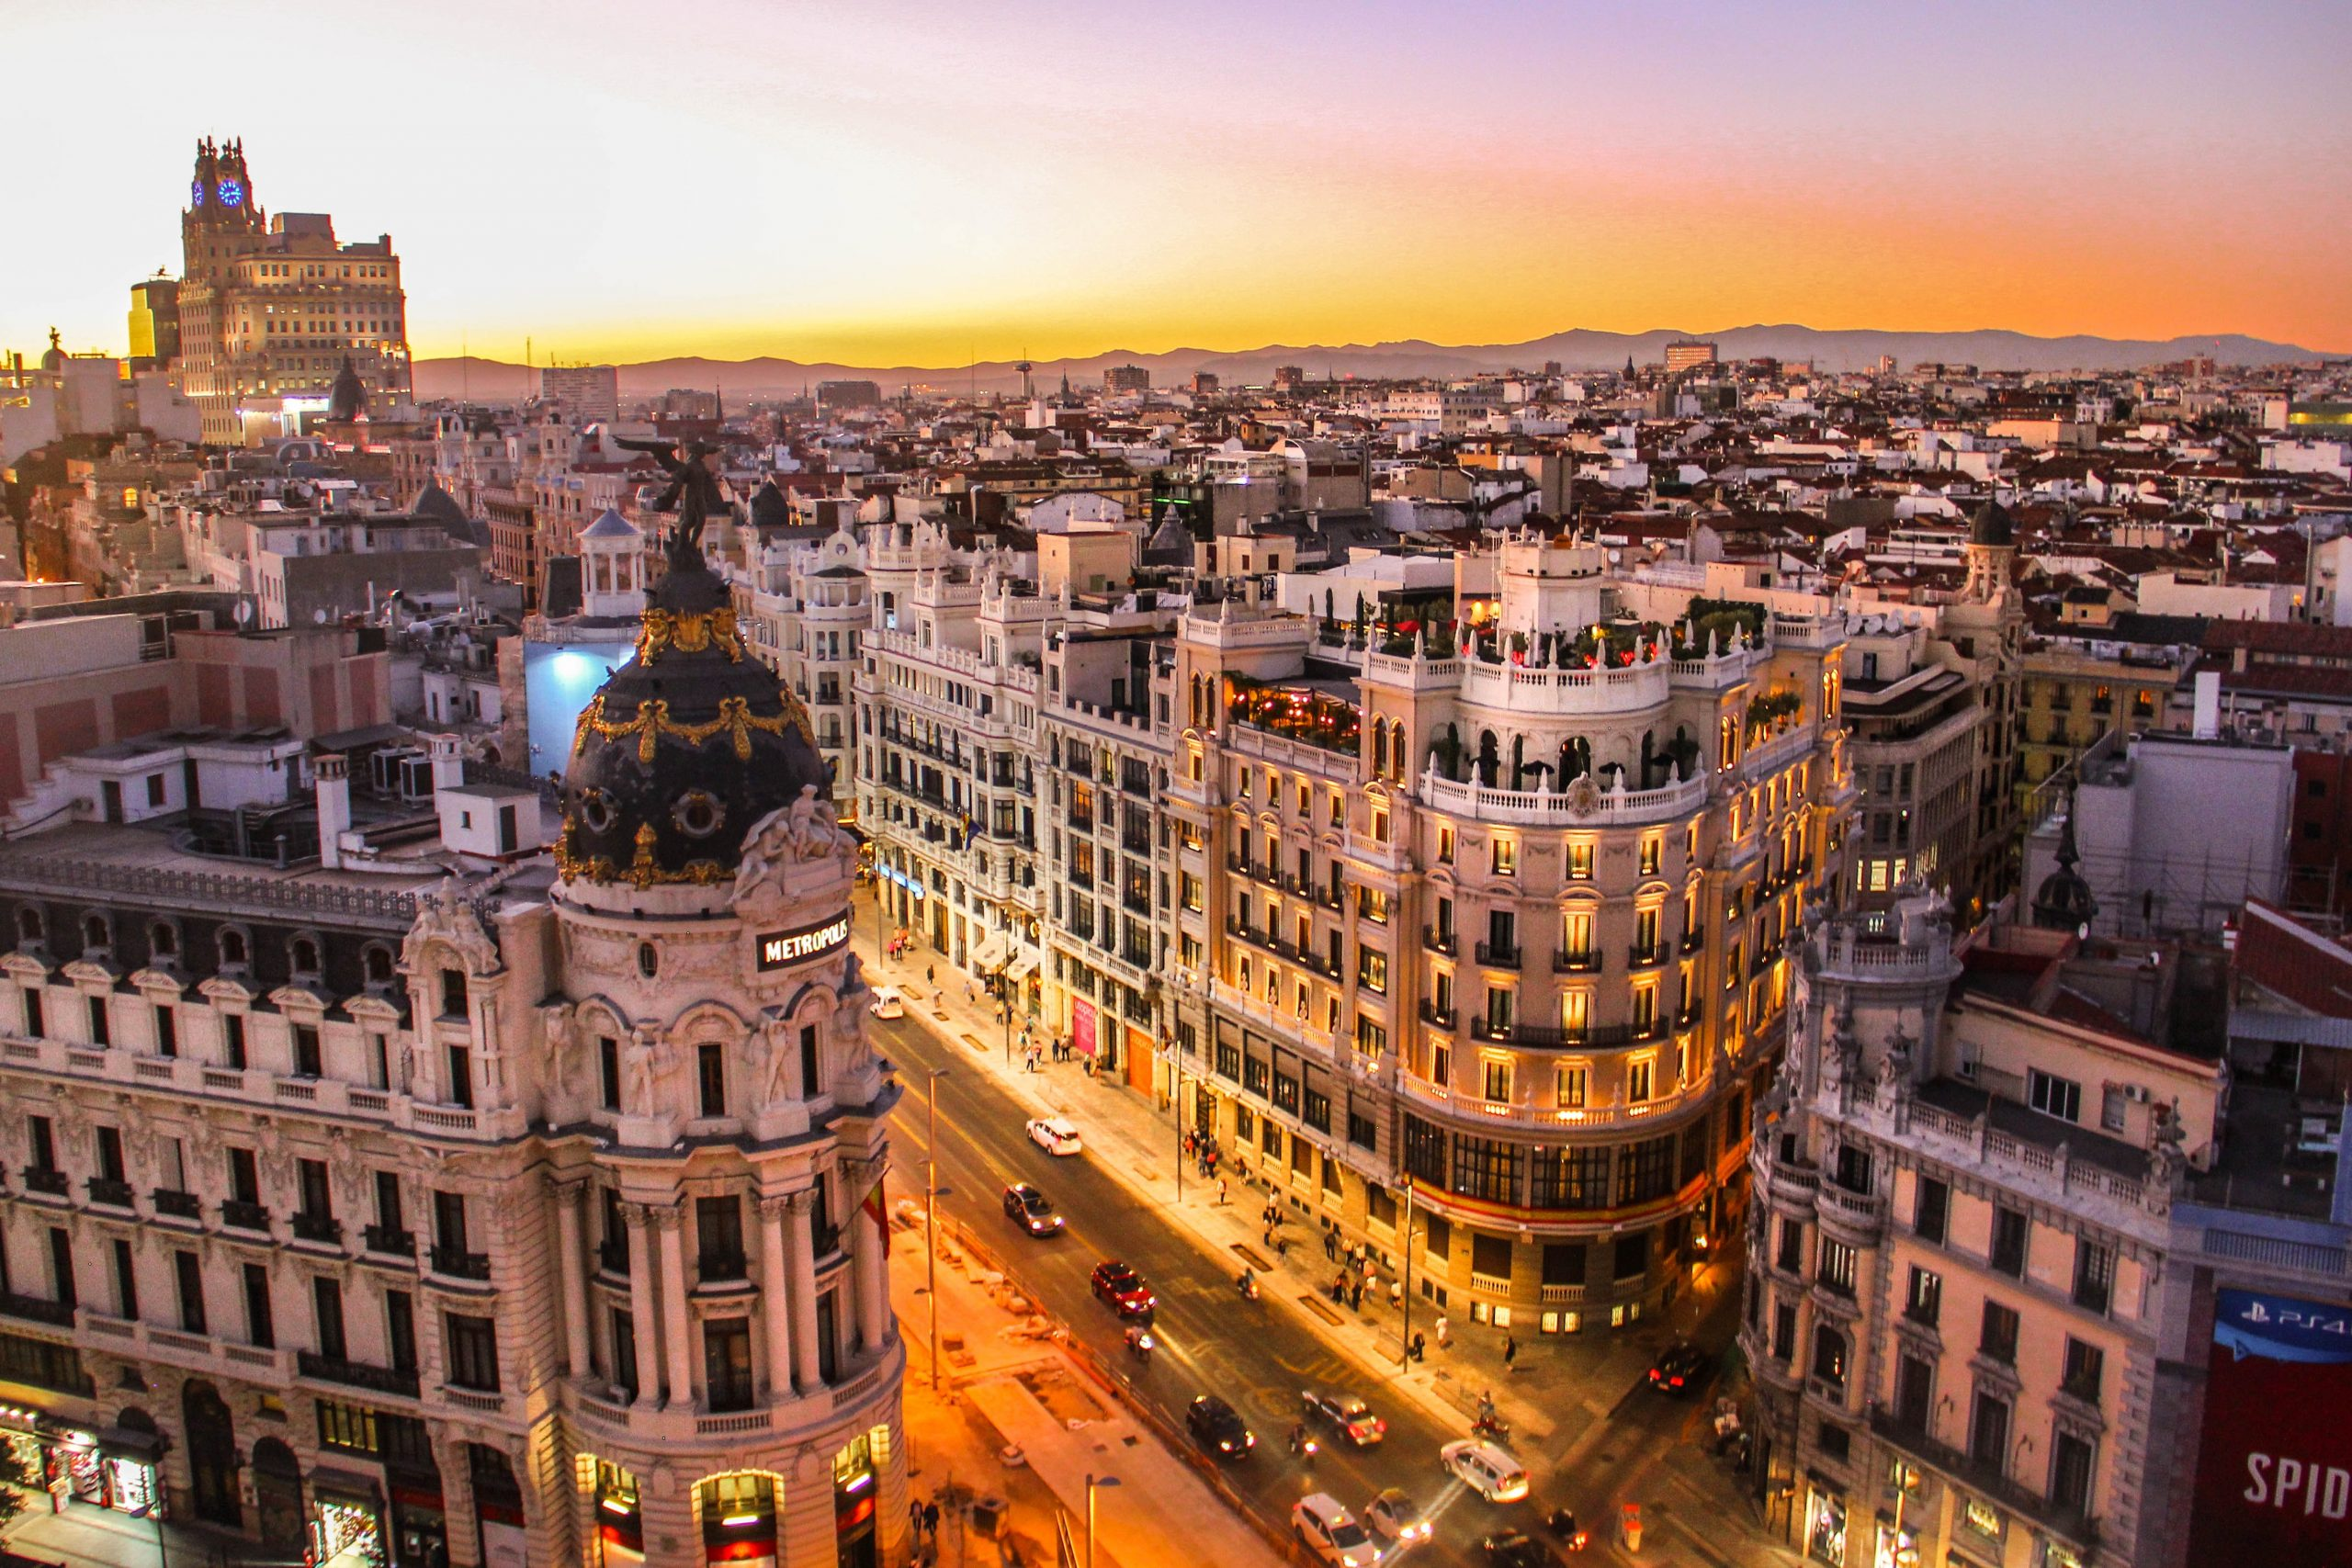 Today Only: An Amazing 50% Off Iberia Flights With Avios Points